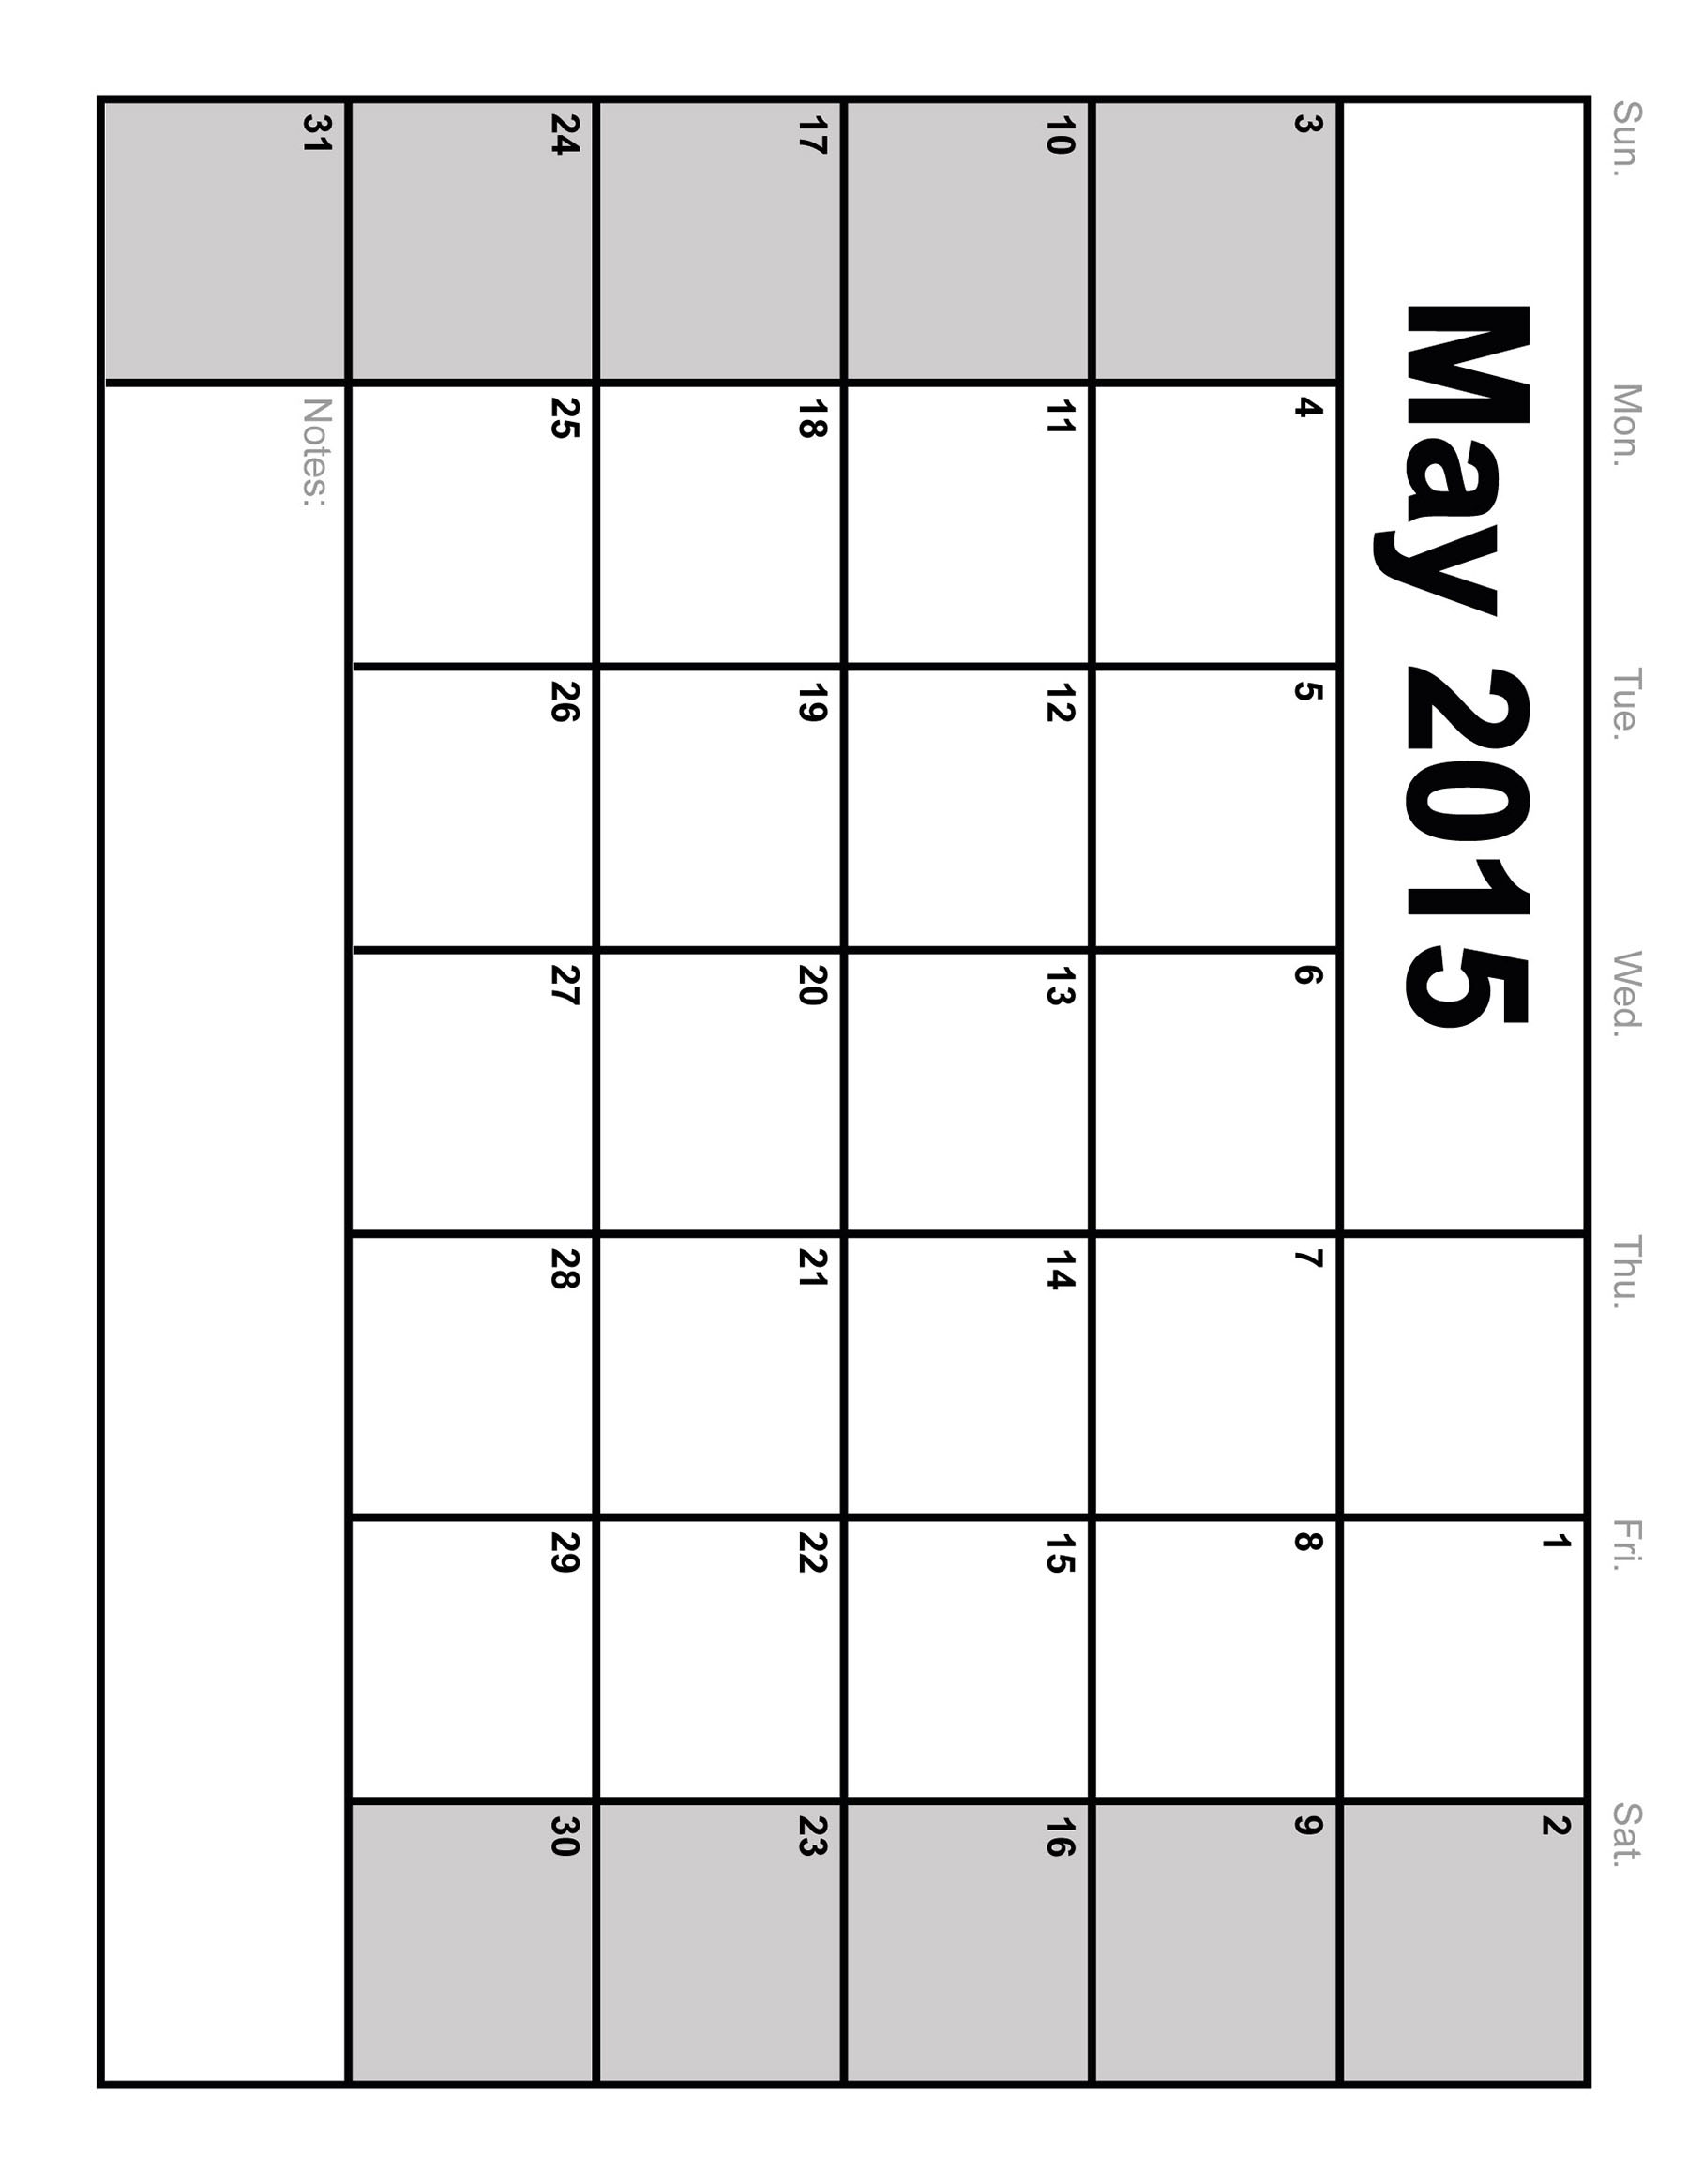 Printable Monthly Calendar May 2015